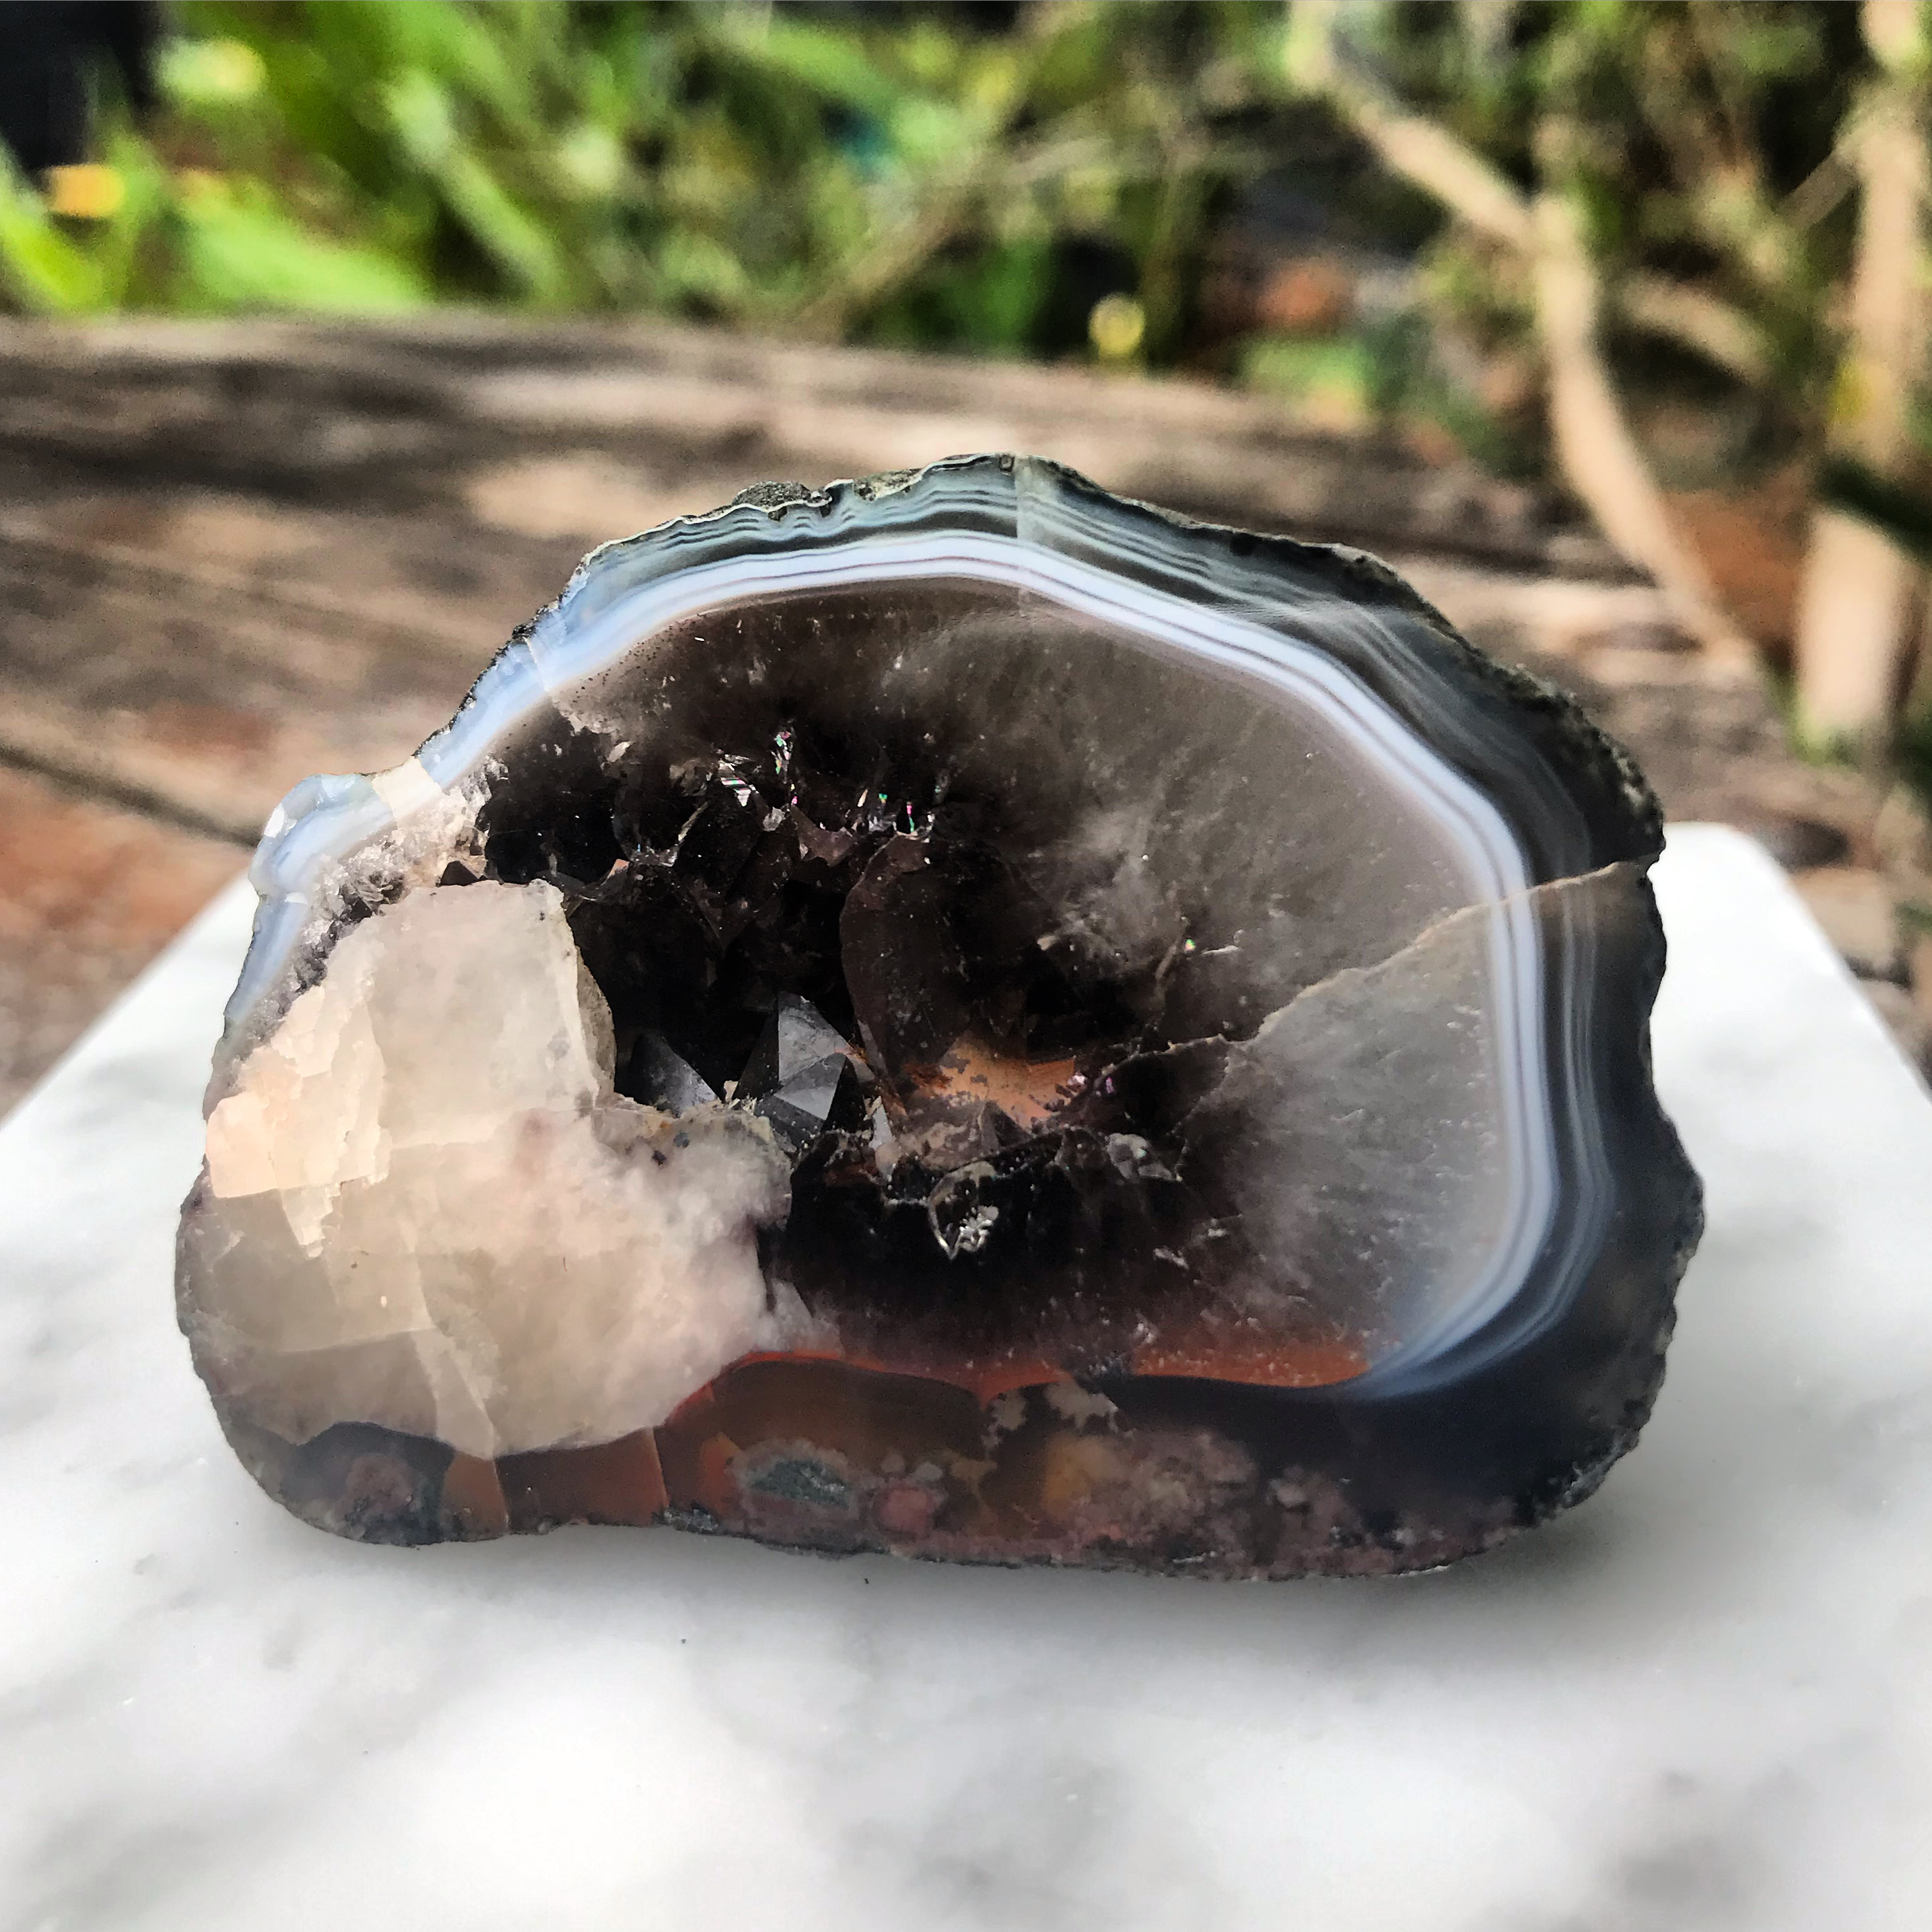 British Geode with calcite, smoky quartz and iron inclusions